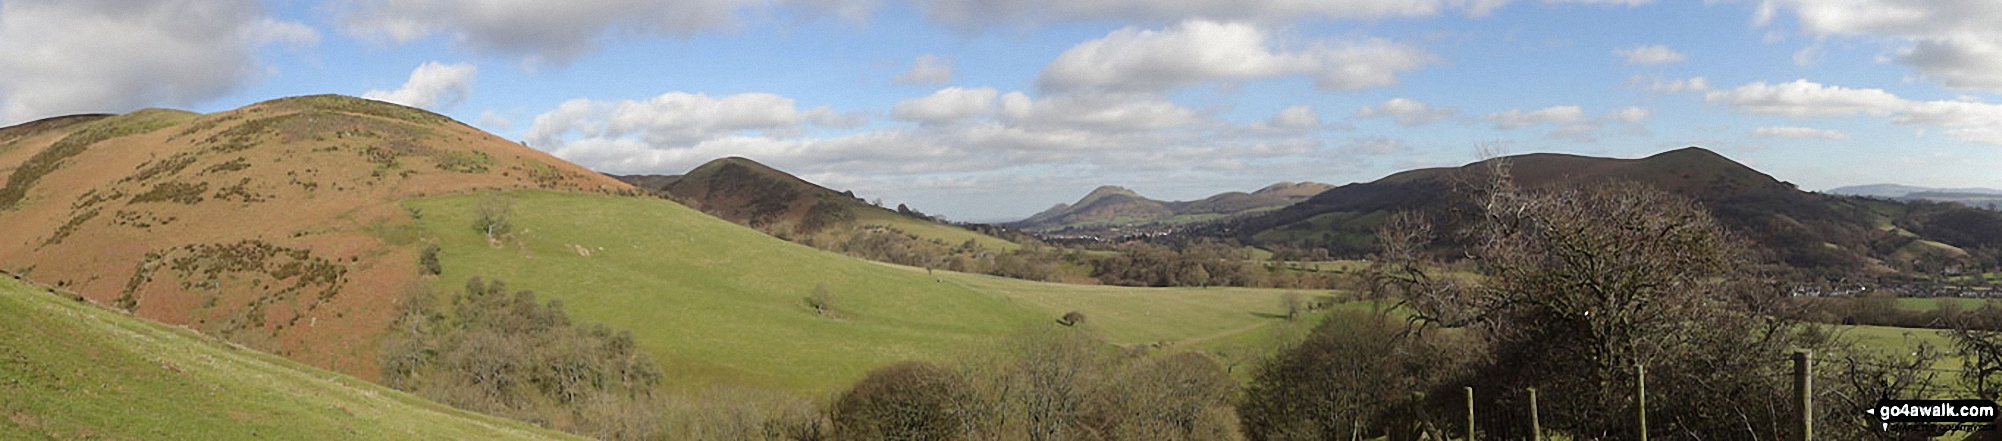 Callow (left), Nills, Church Stretton, The Lawley, Caer Caradoc Hill and Ragleth Hill (right) from near Minton